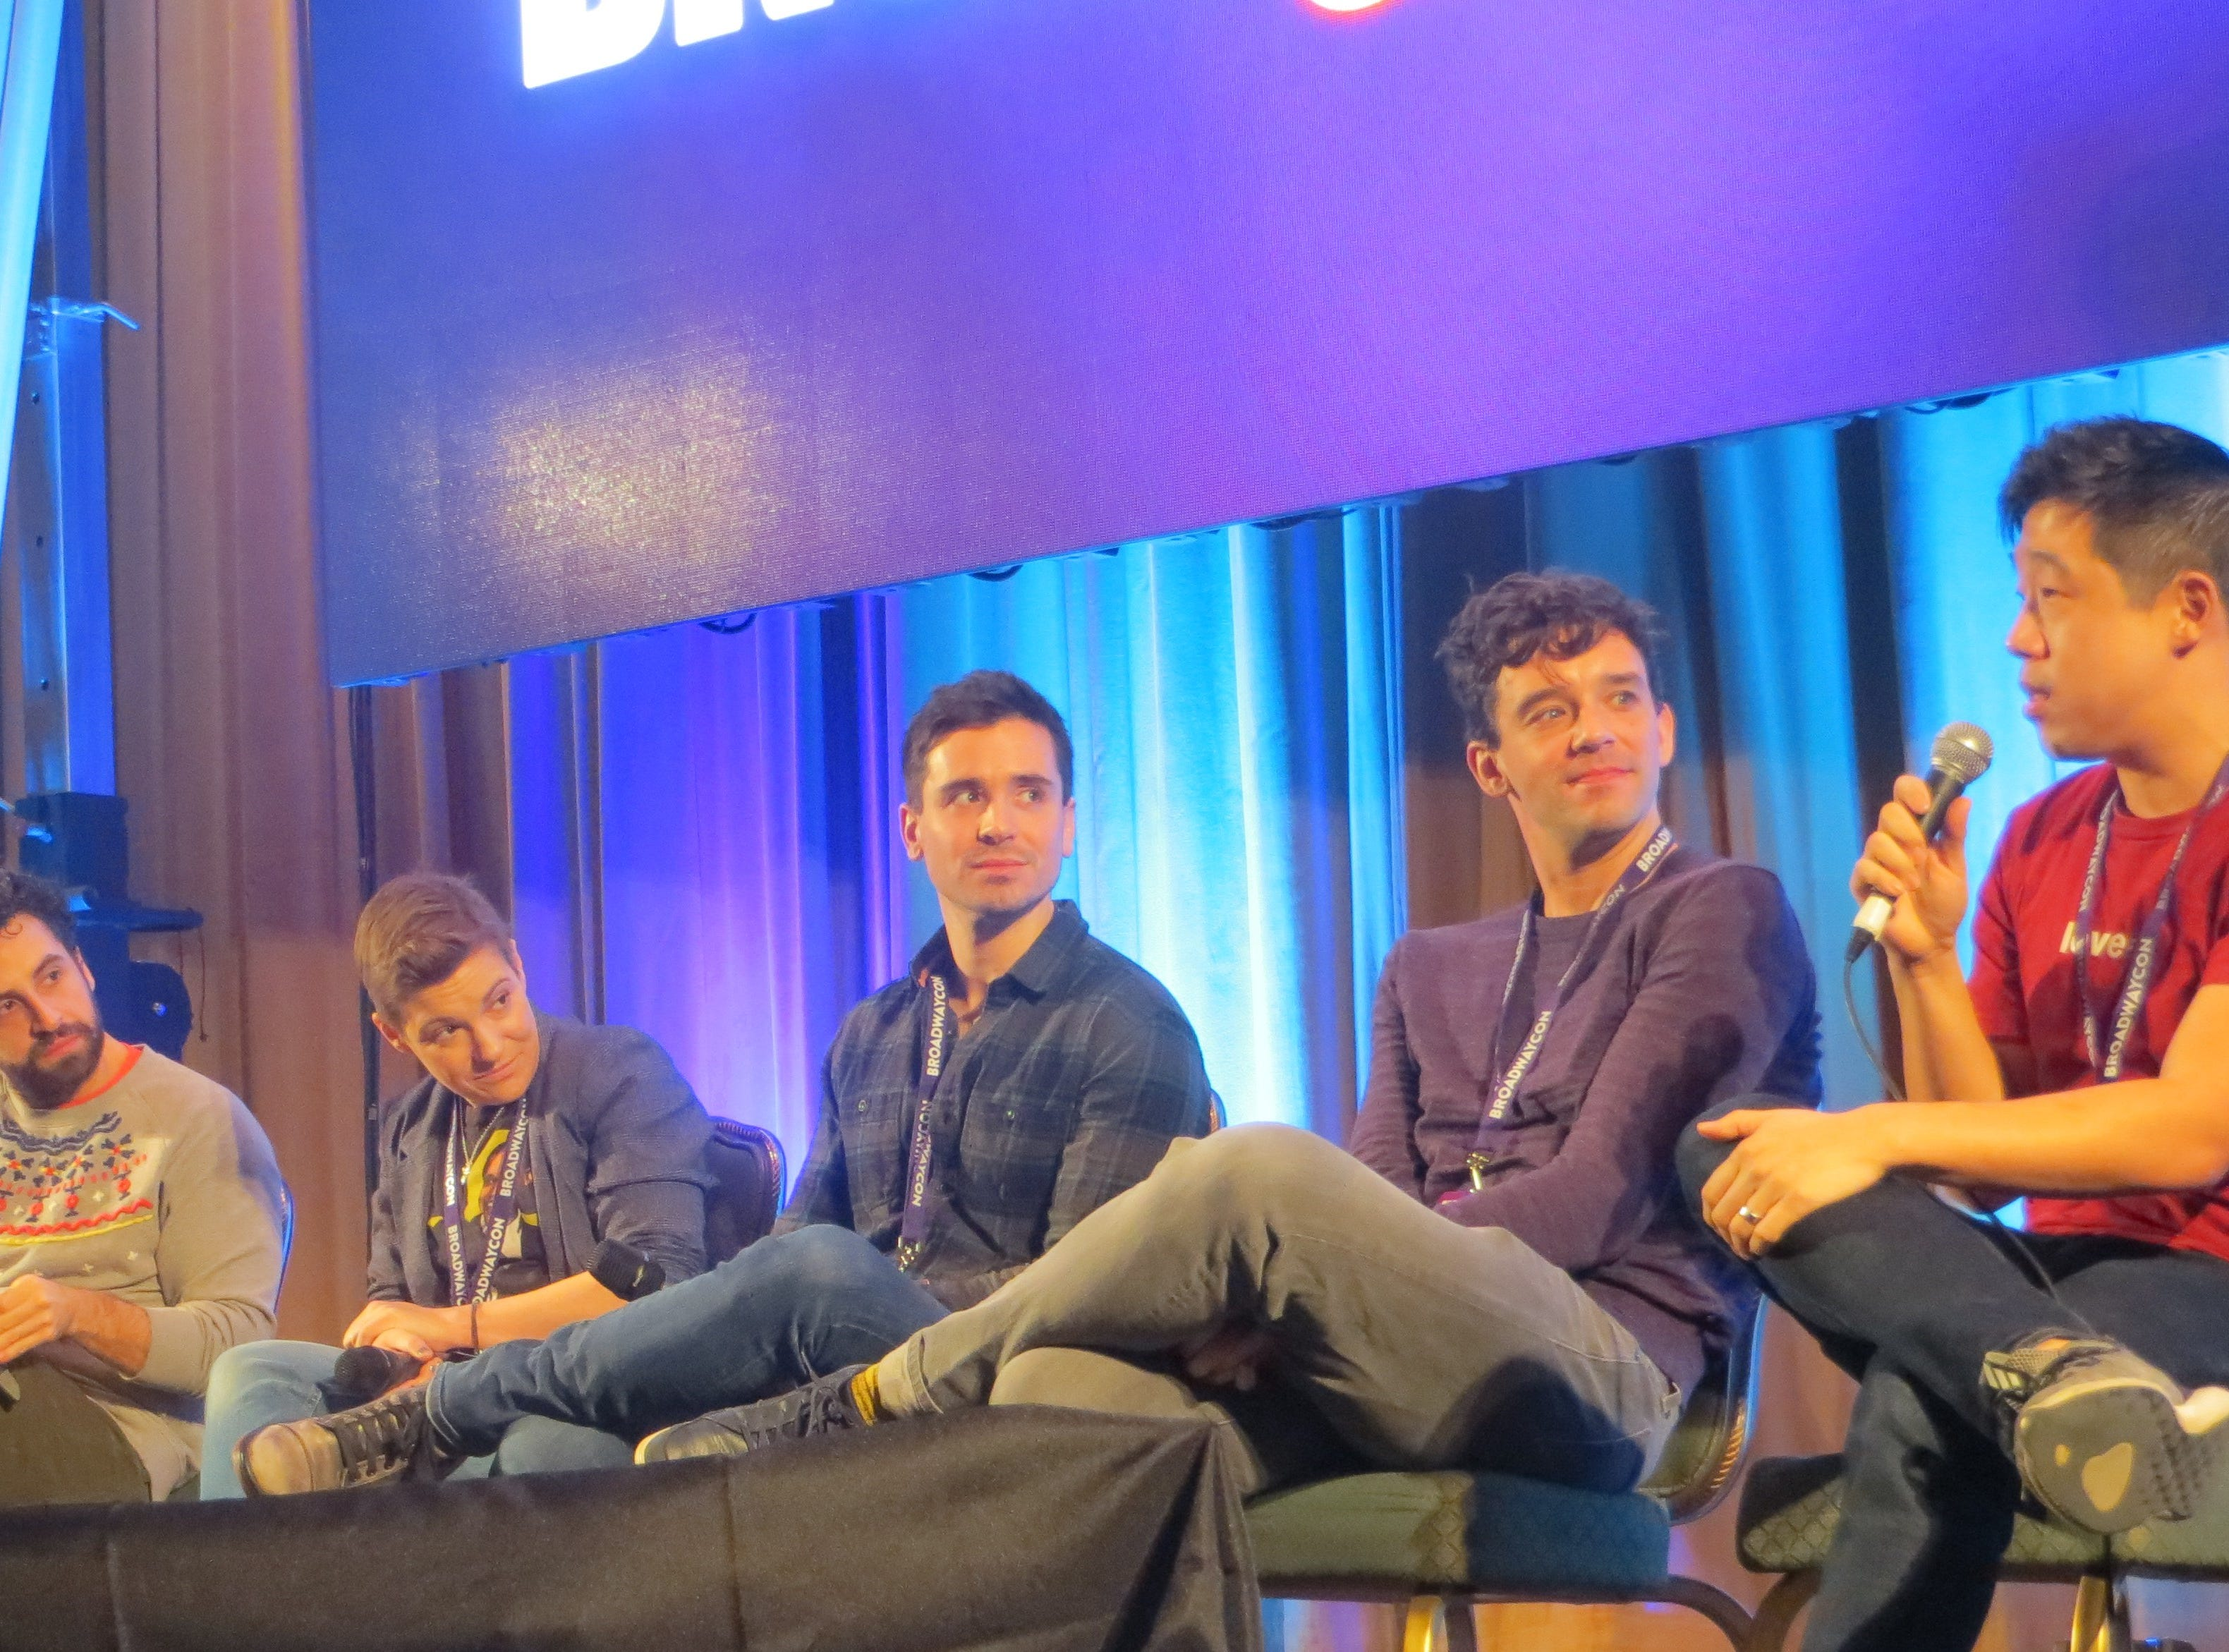 John Riddle, Brandon Uranowitz, Daisy Eagan, Matt Doyle, Michael Urie and Raymond Lee during the Out on Broadway panel at BroadwayCon 2019, held Jan. 11 to 13, 2019, at the New York Hilton Midtown in Manhattan.